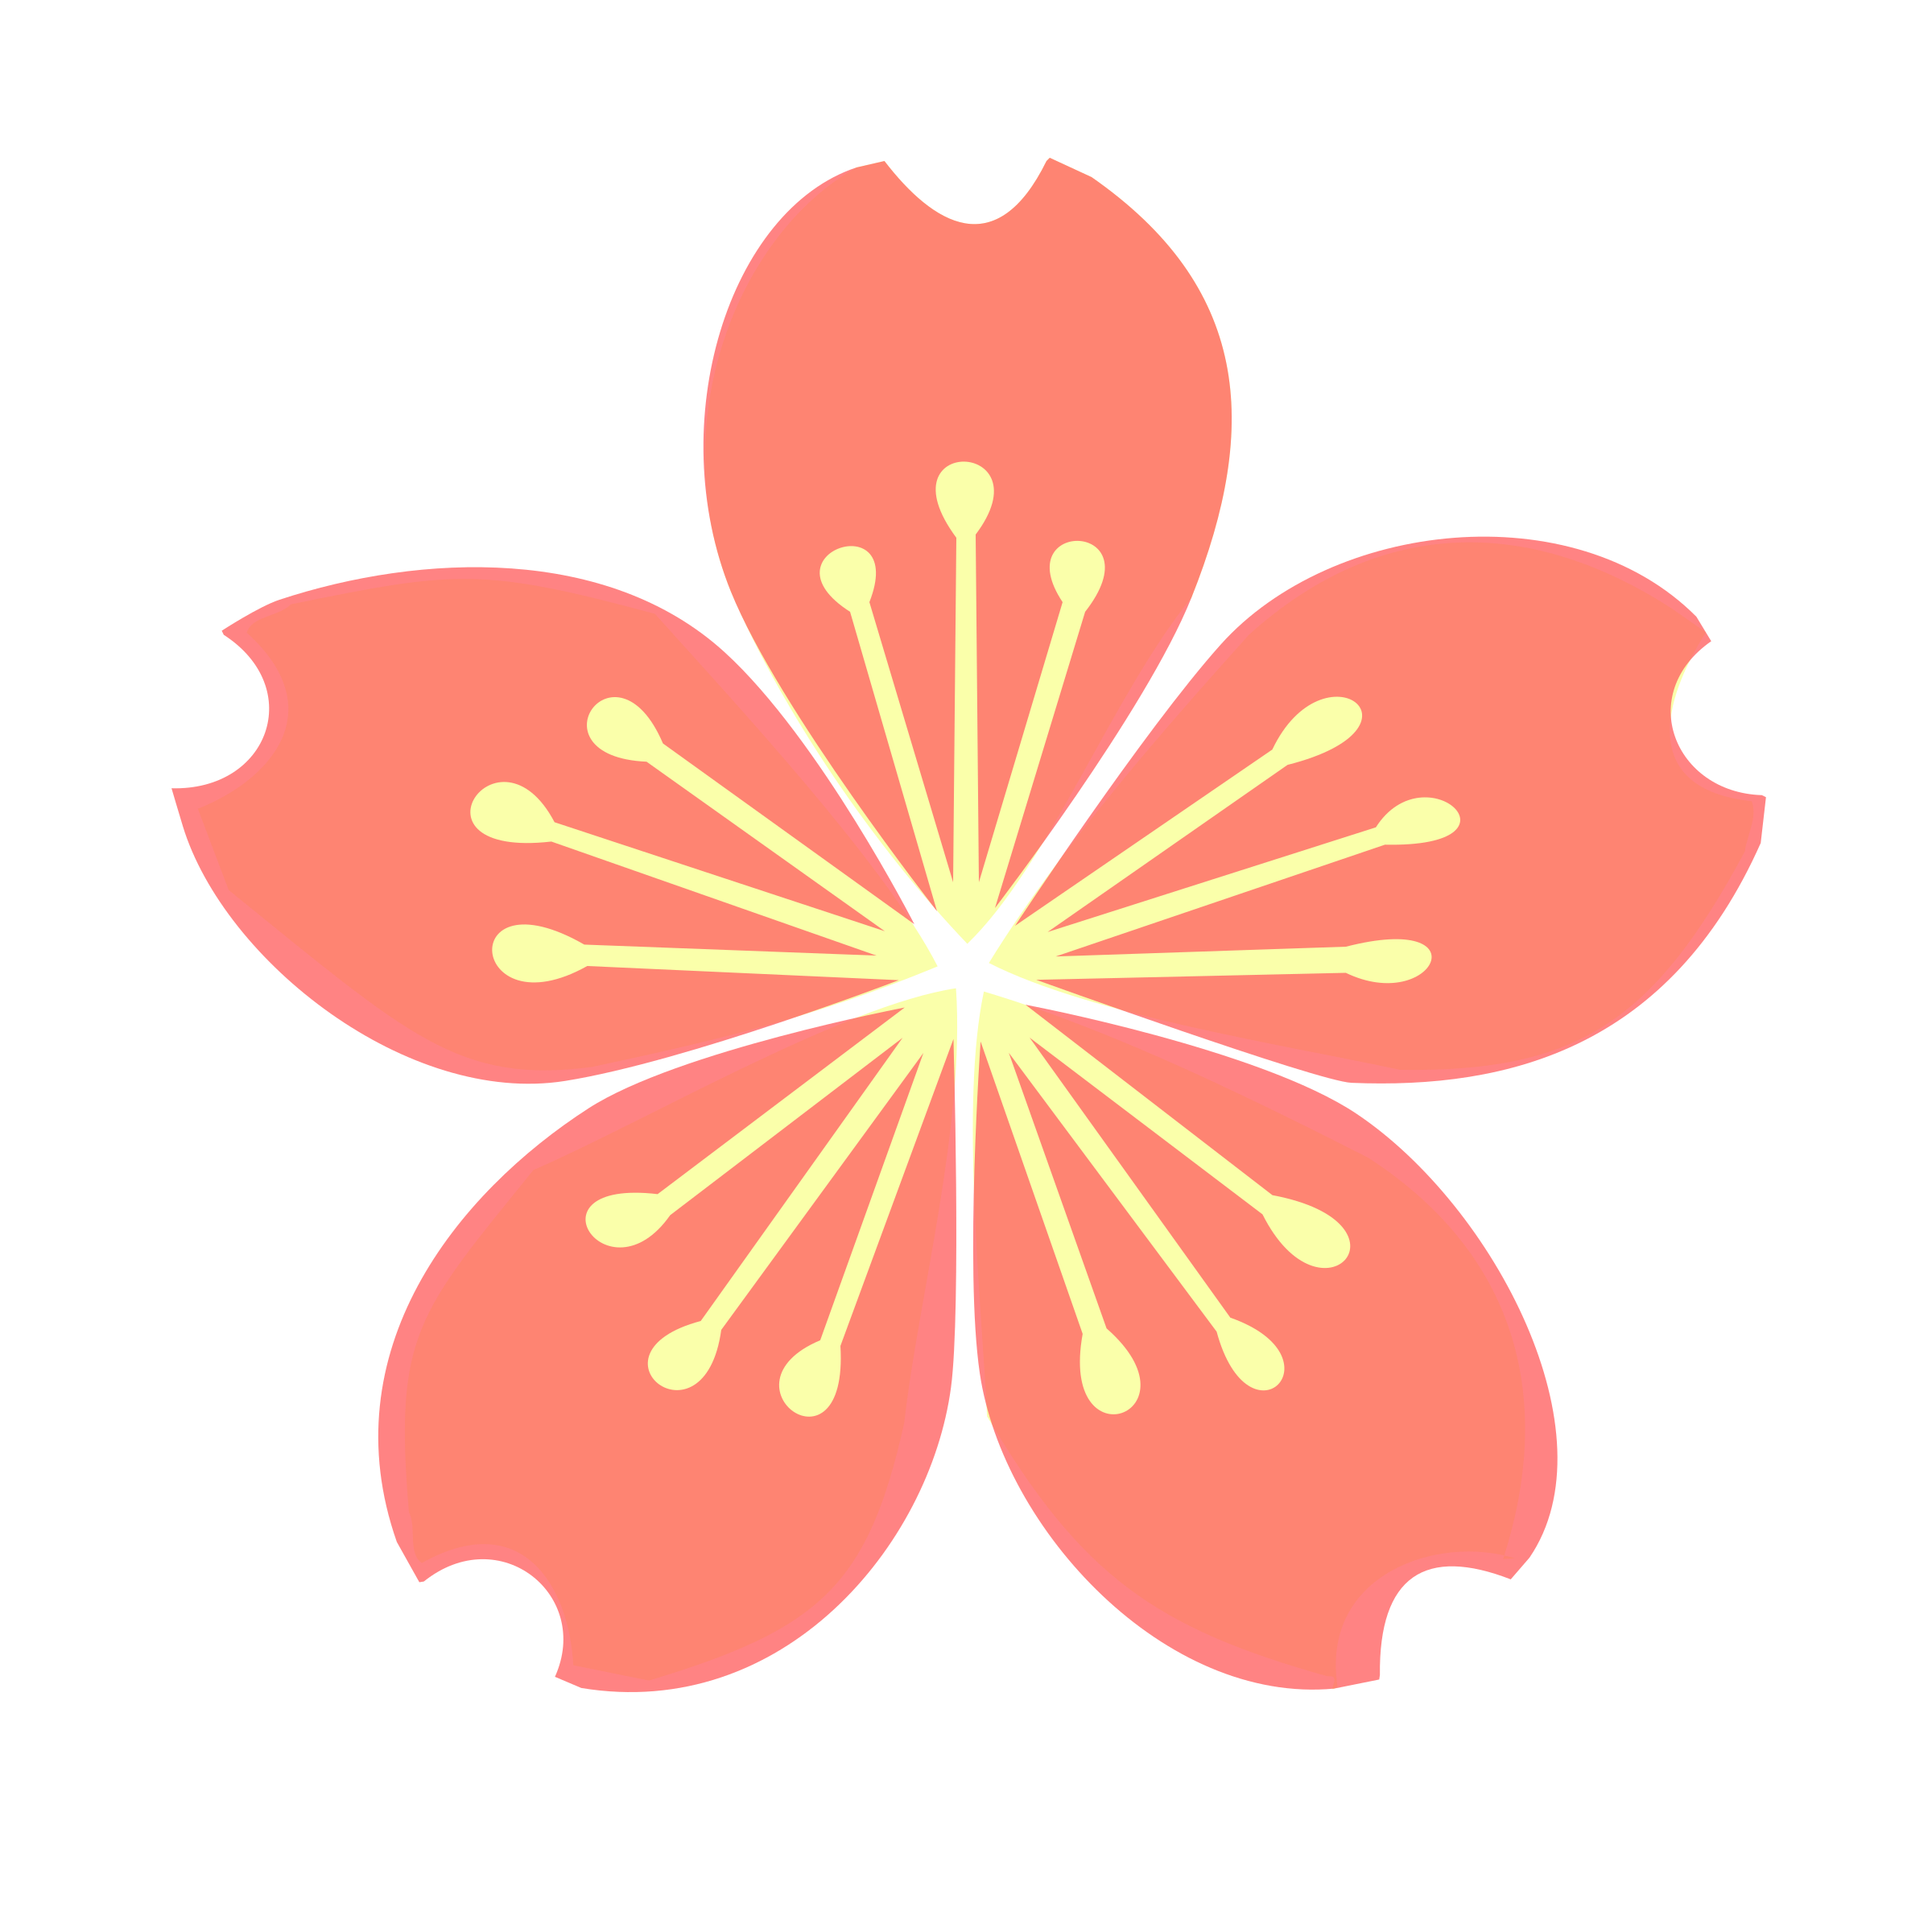 Cherry blossom vector png. Loading spinner icons free